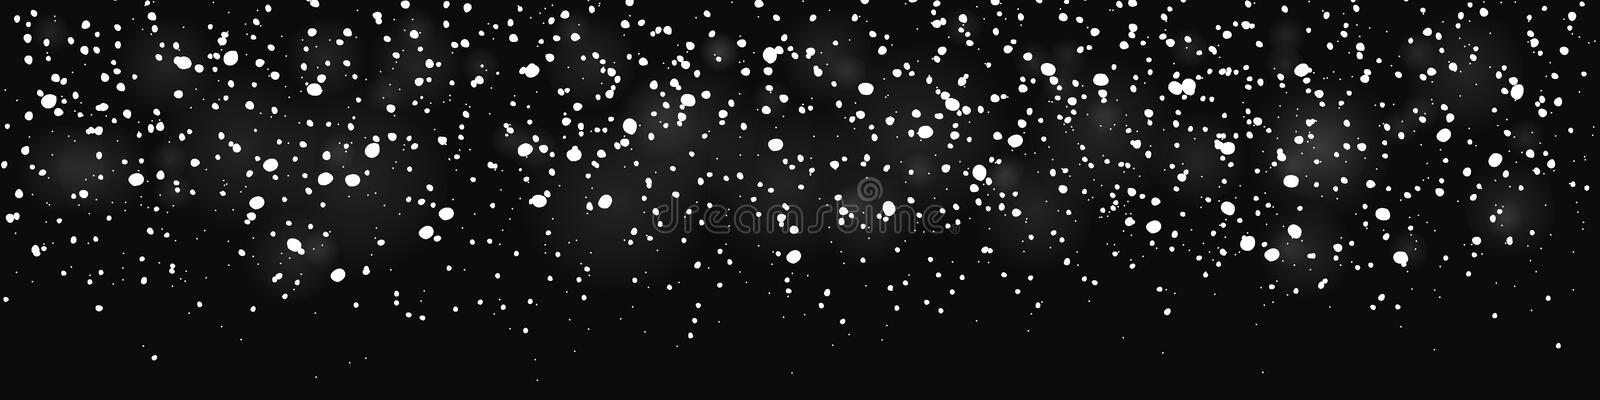 Falling snow seamless banner for winter decorations royalty free illustration